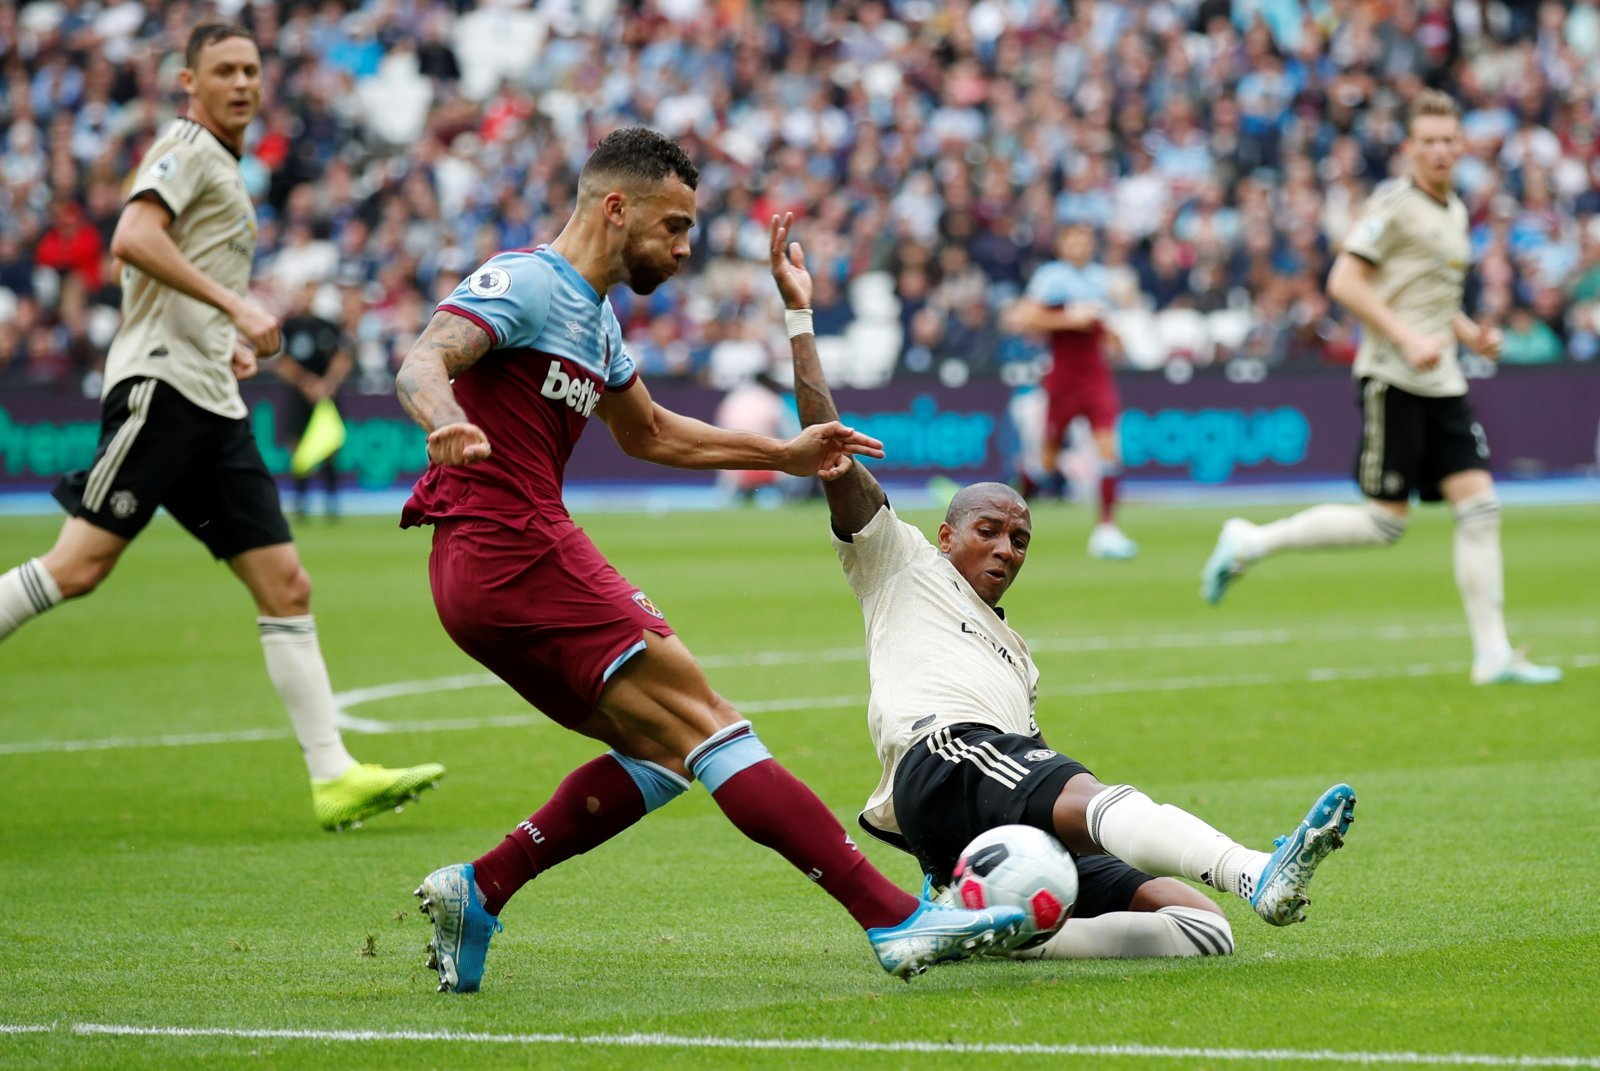 Unsung Hero: West Ham's Ryan Fredericks was influential despite being overshadowed